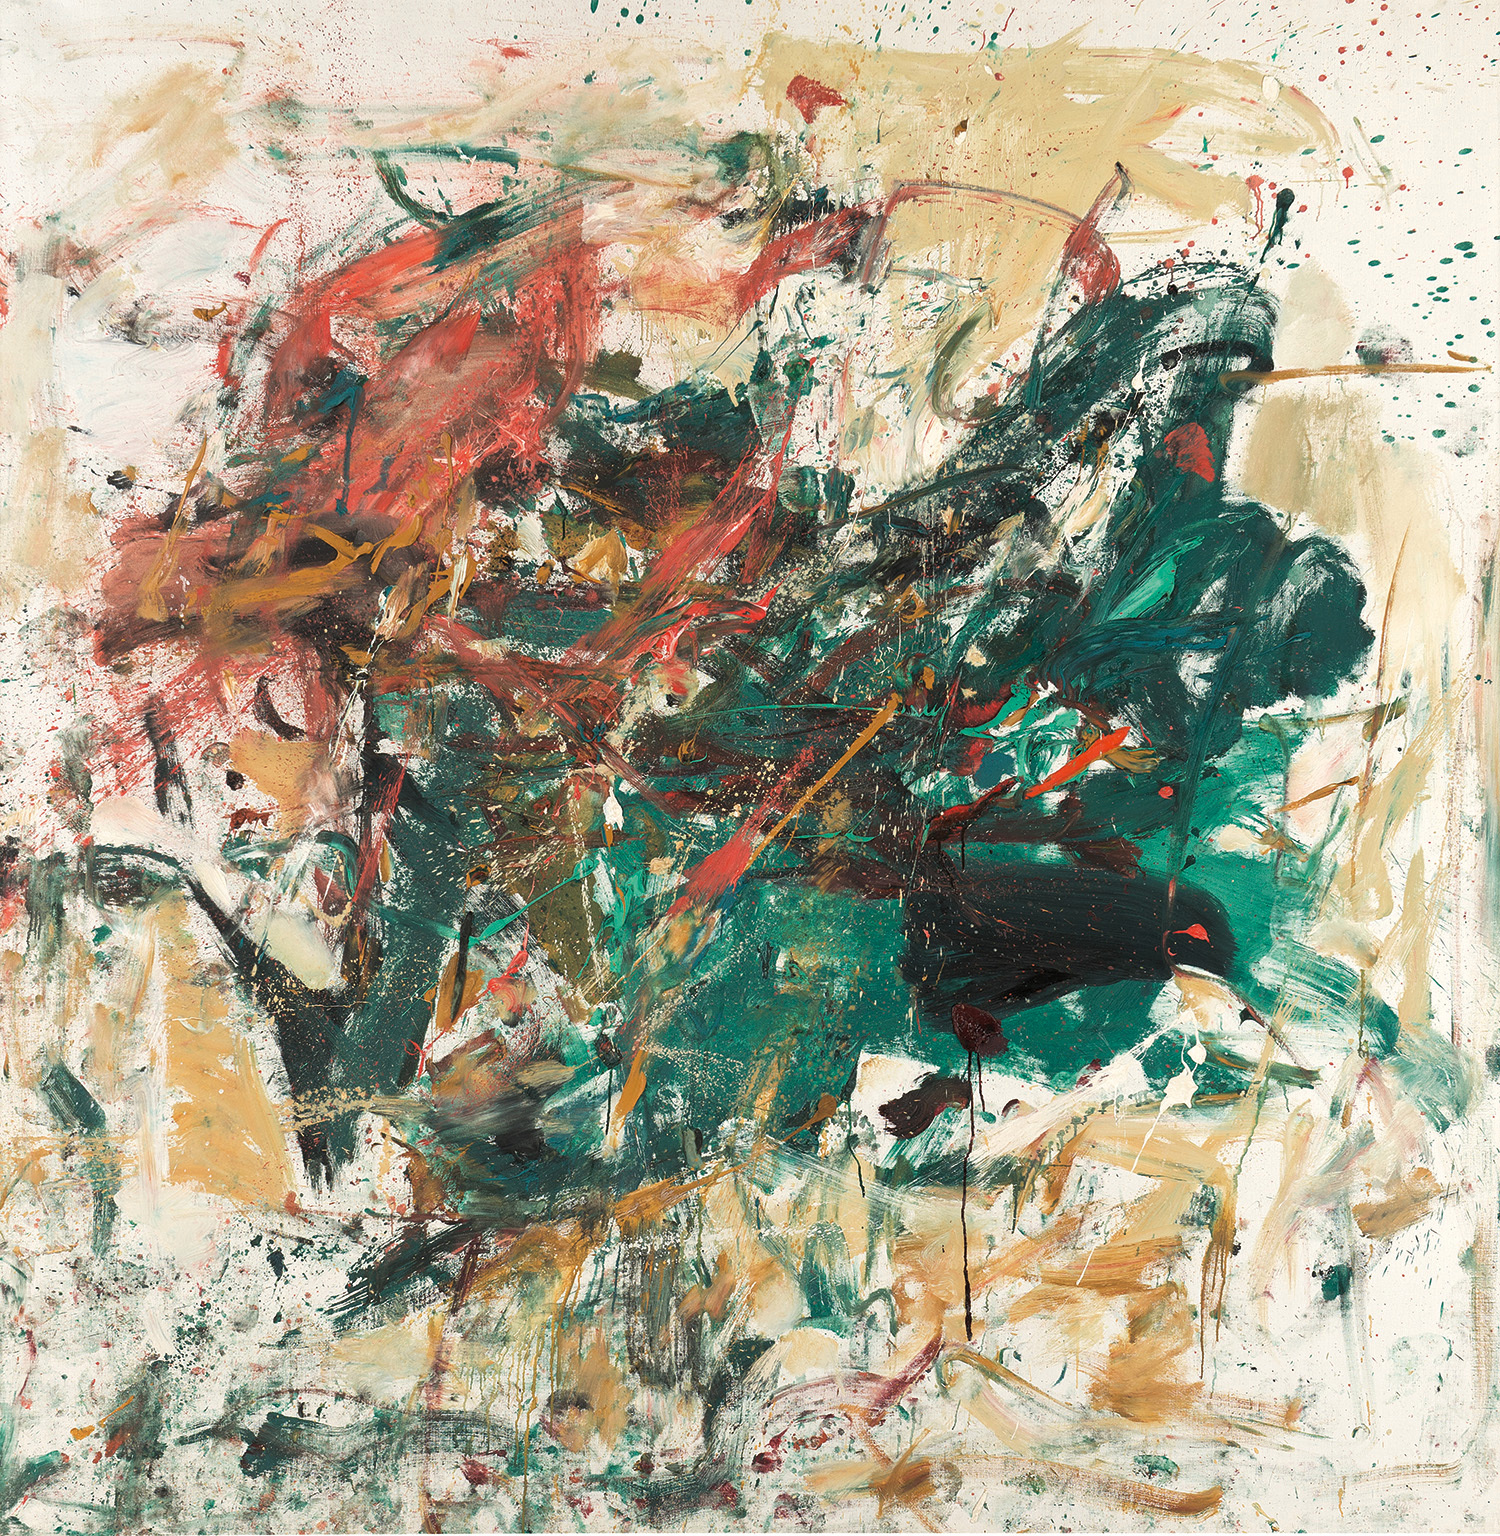 Mitchell, Basquiat Top $41 M. Phillips Contemporary Evening Sale, Thirst for Young Artists Brings NewRecords